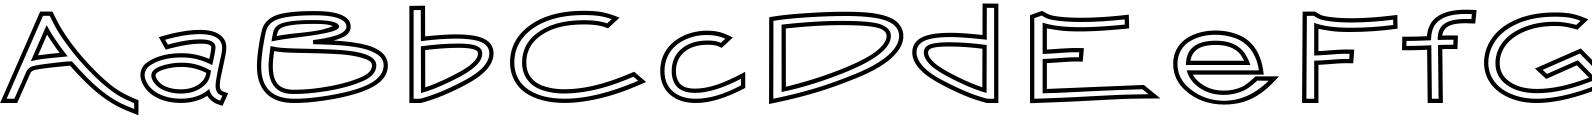 Smooth Buggaloo Outline Font